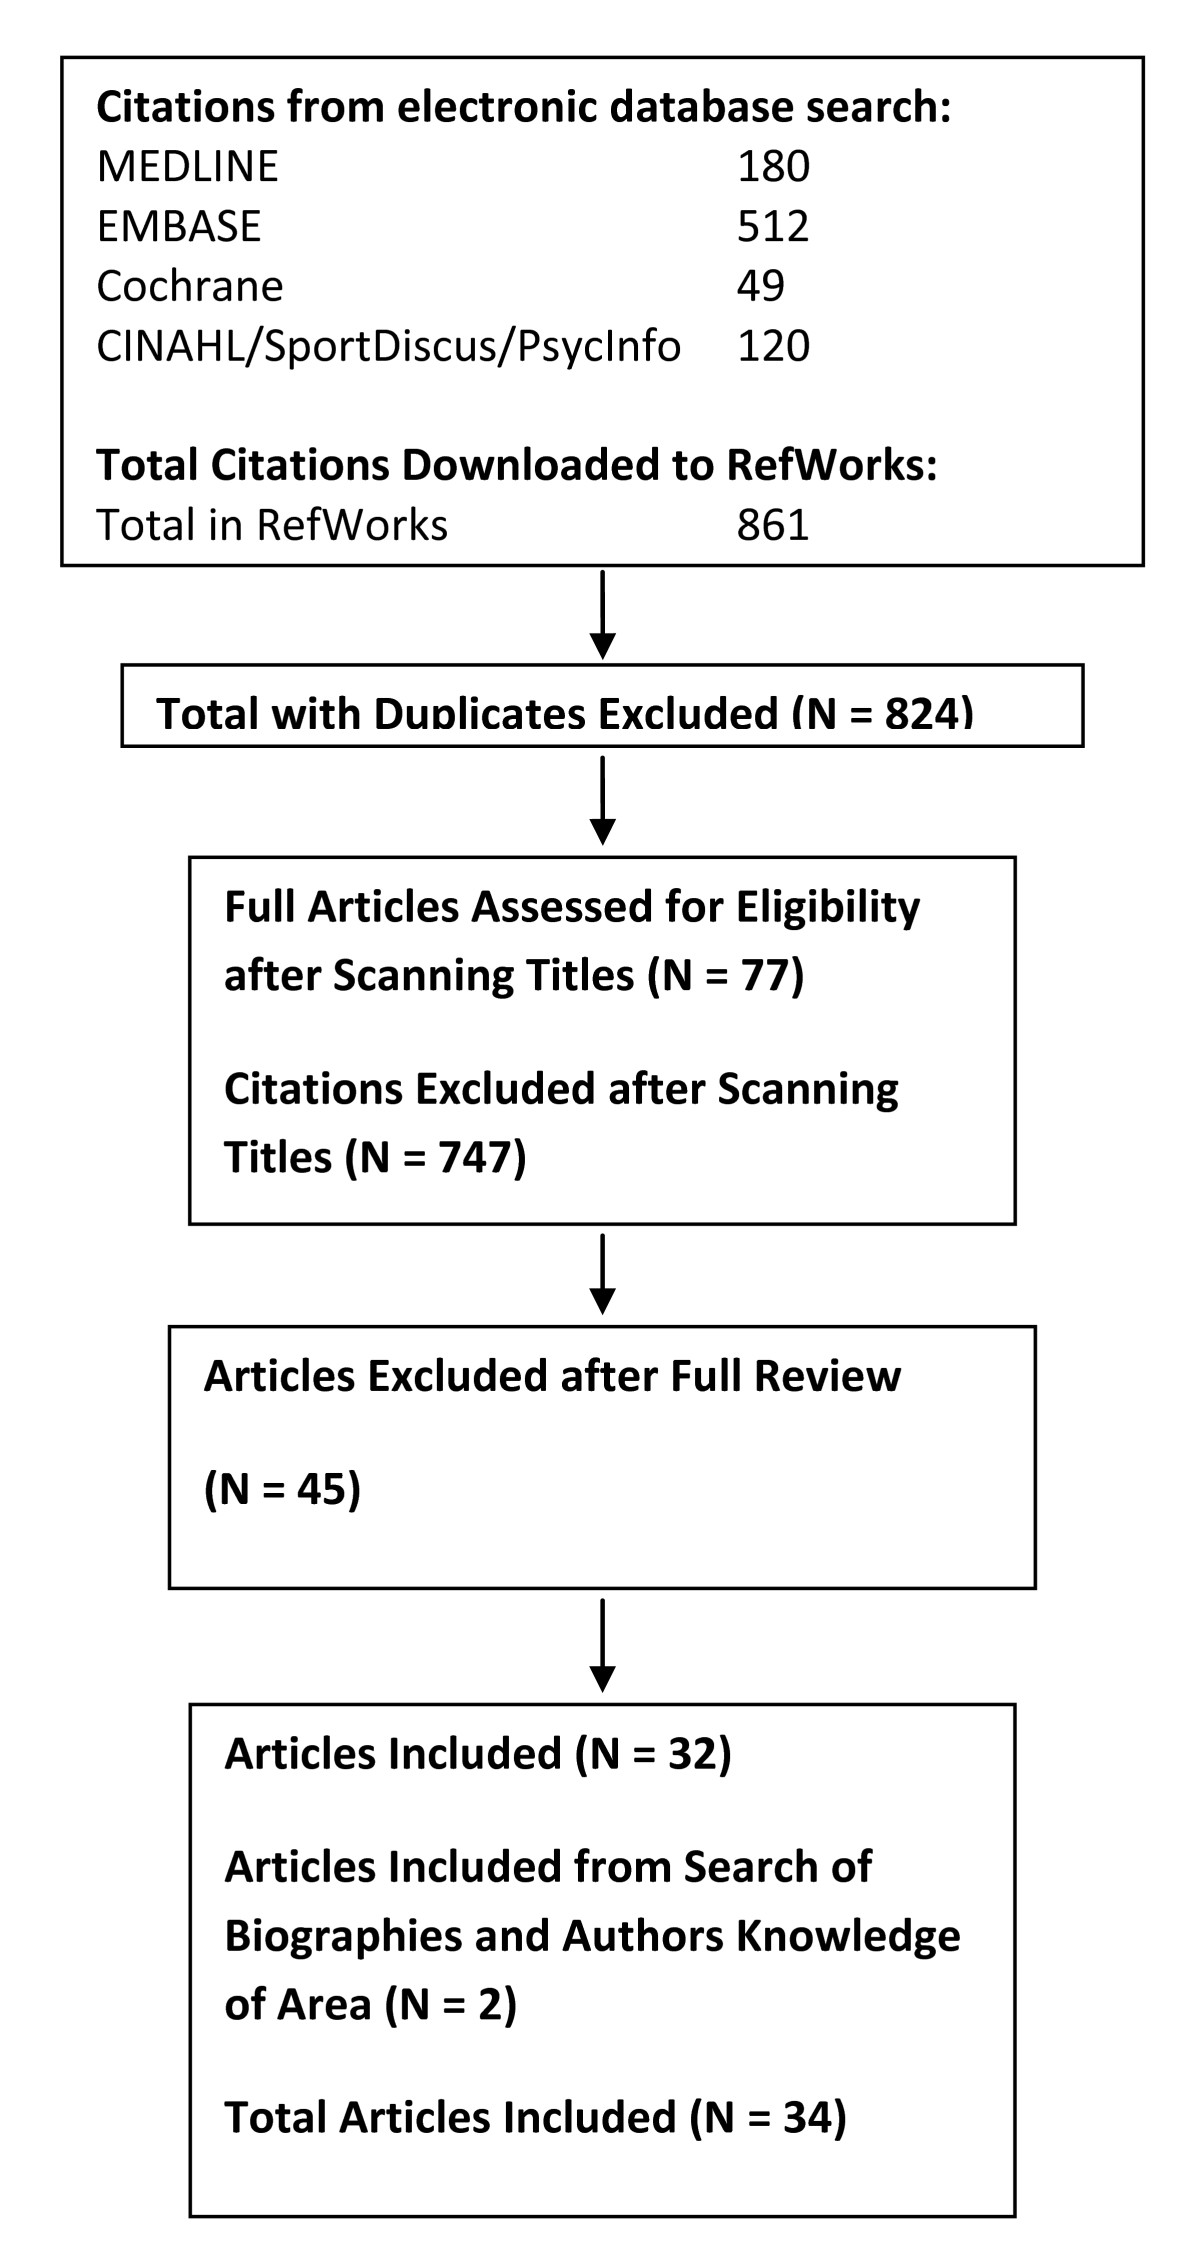 https://static-content.springer.com/image/art%3A10.1186%2F1479-5868-7-38/MediaObjects/12966_2009_Article_344_Fig4_HTML.jpg